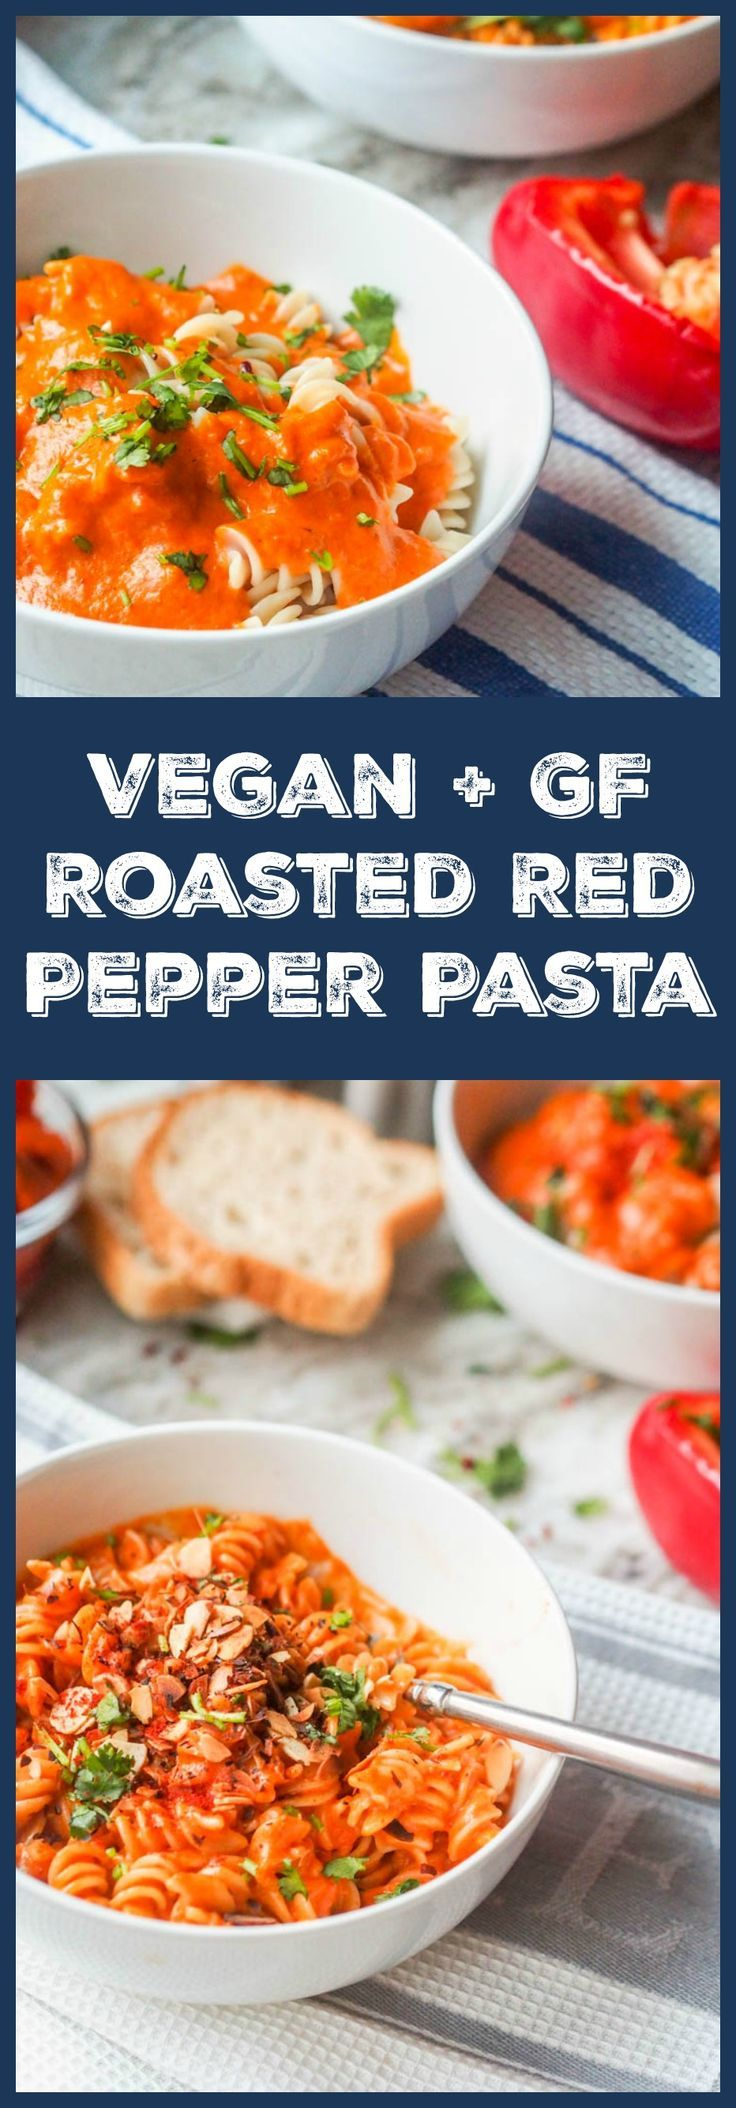 Roasted red peppers, Red peppers and You never know on Pinterest